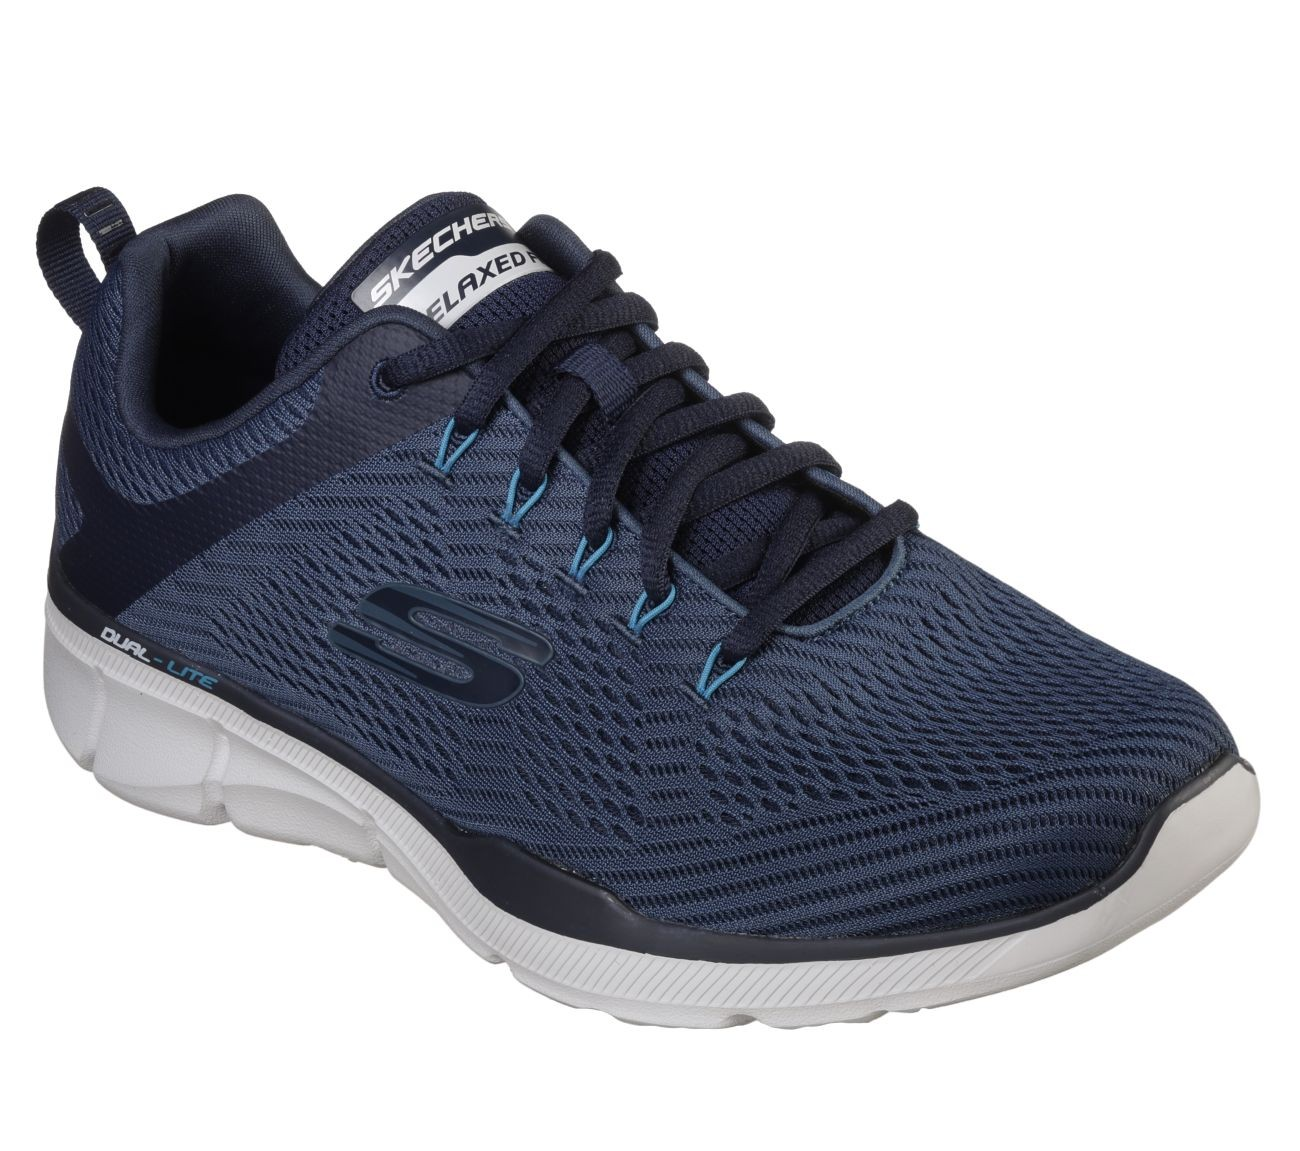 Mens Relaxed Fit Equalizer 3.0